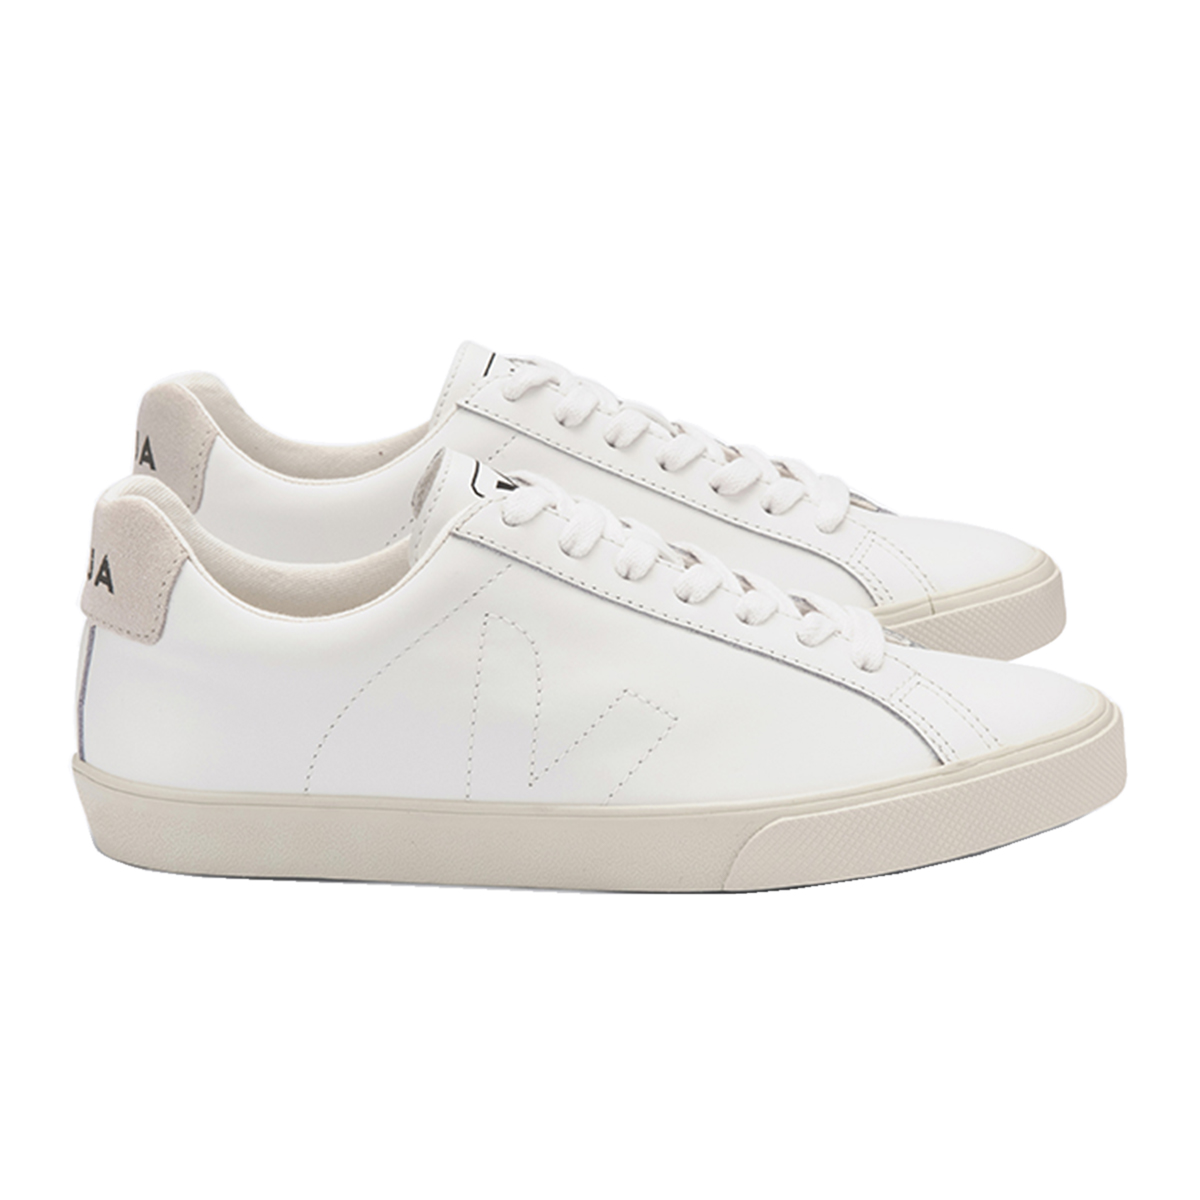 Veja Adult Esplar Logo Extra White Shoes